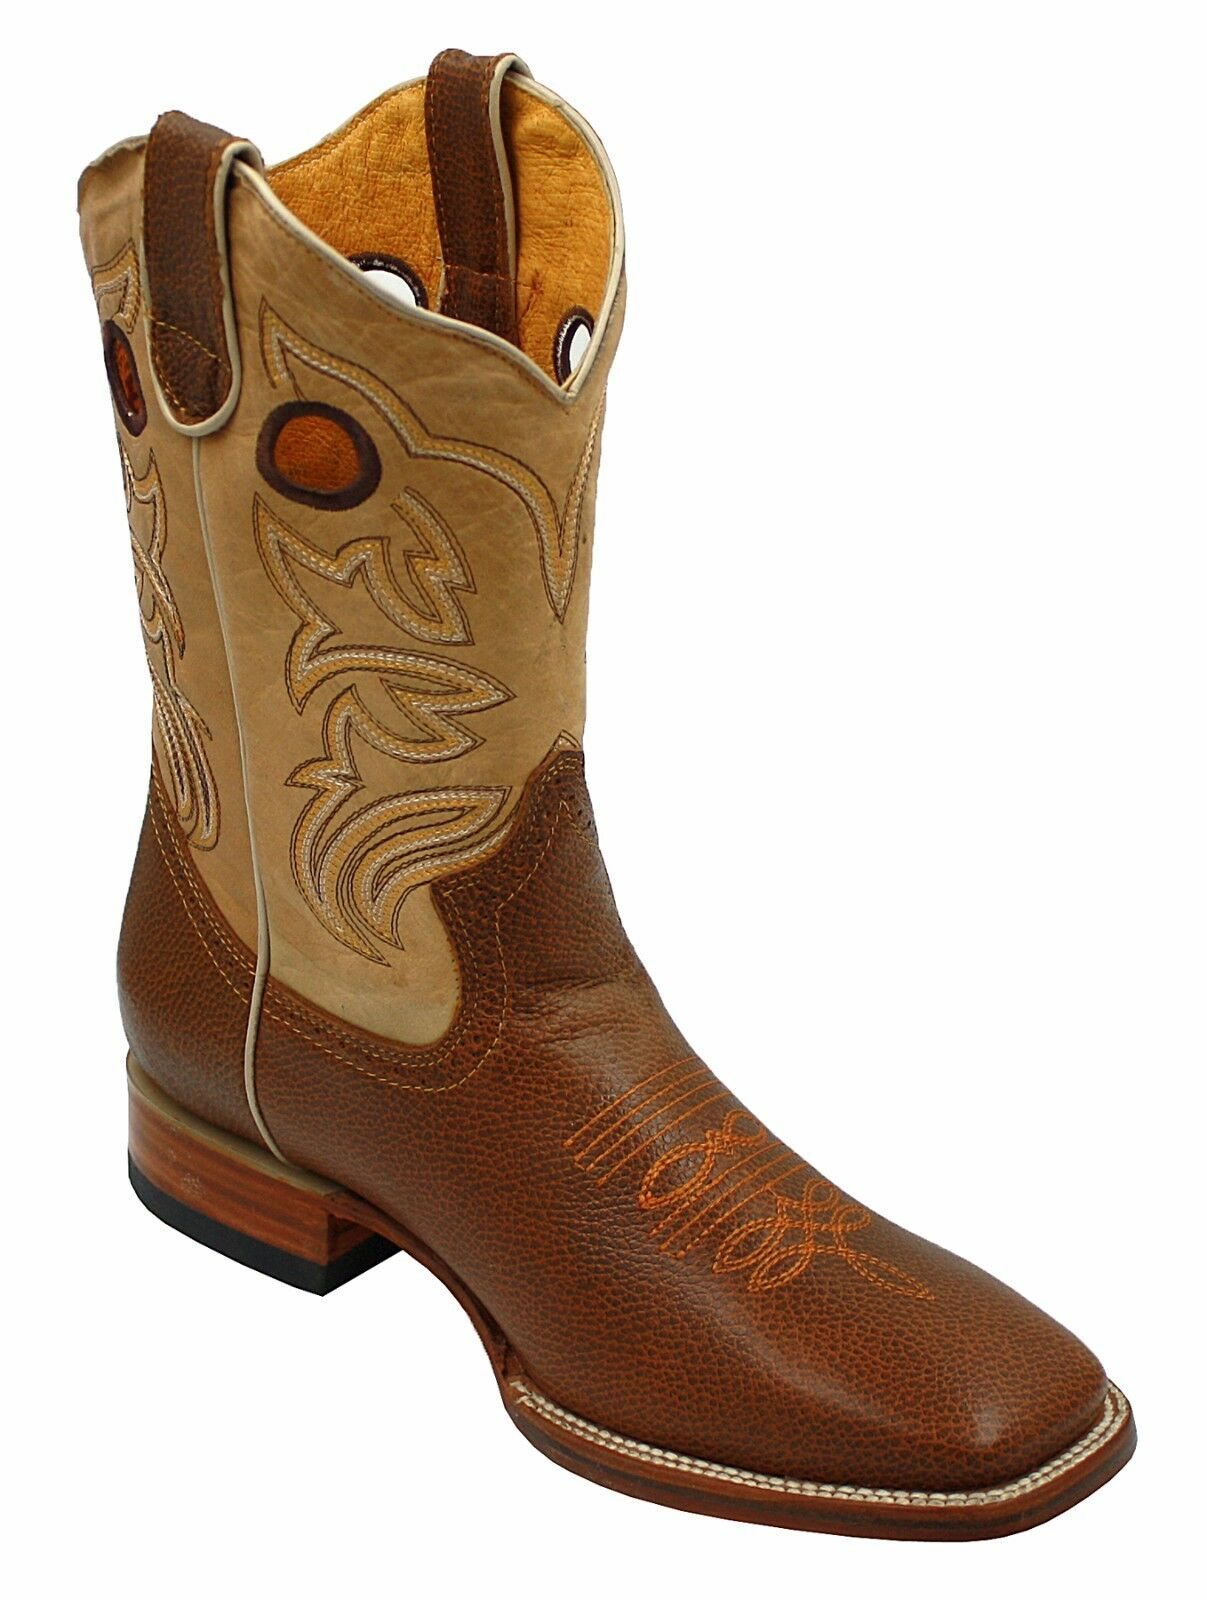 Uomo Genuine Toe Cowhide Pelle Square Toe Genuine Rodeo Western Stivali with Pelle sole e4b8b5